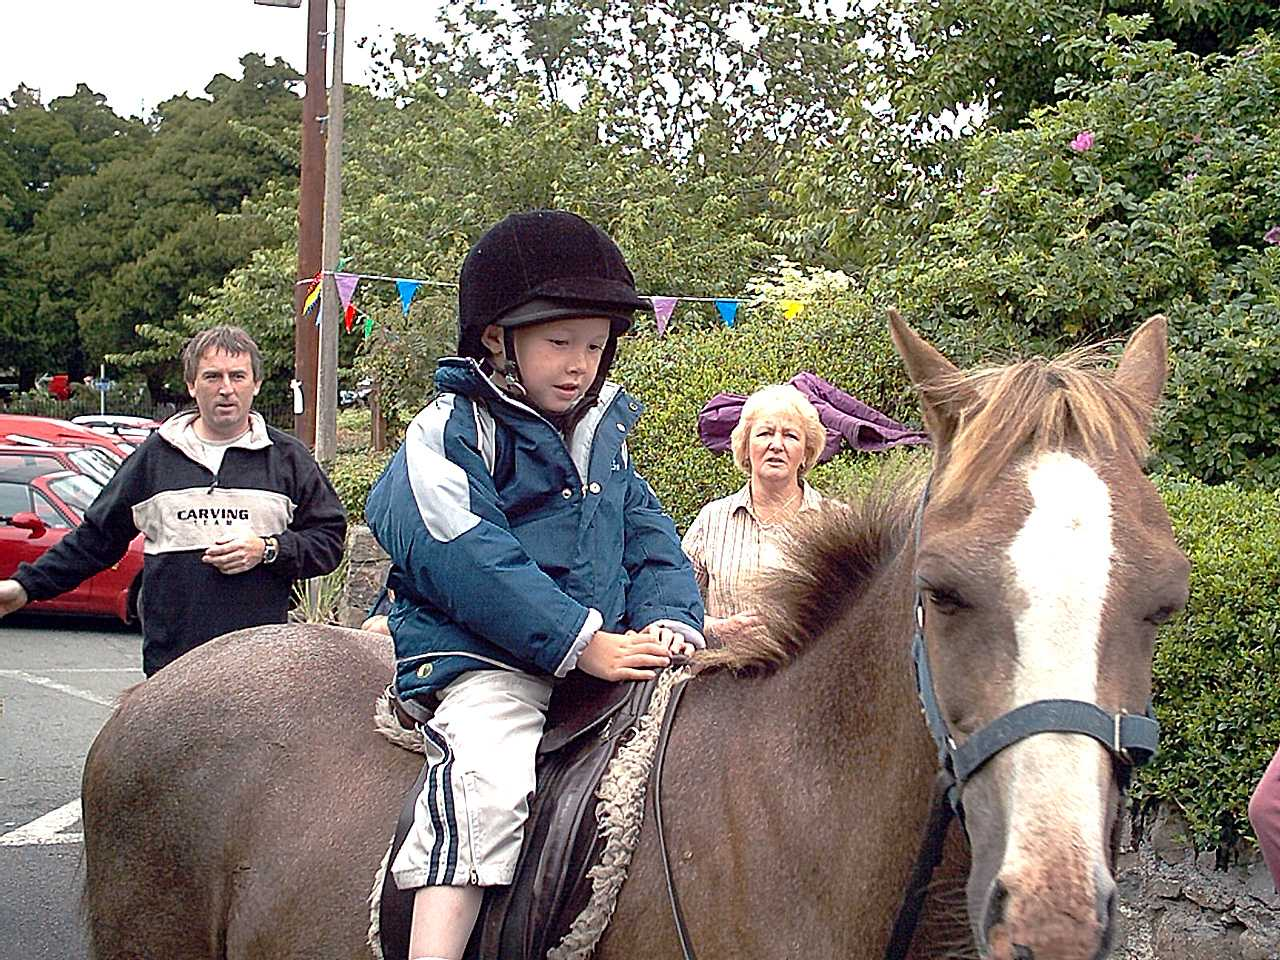 Anglesey, Grandson Ben on a horse in 2003